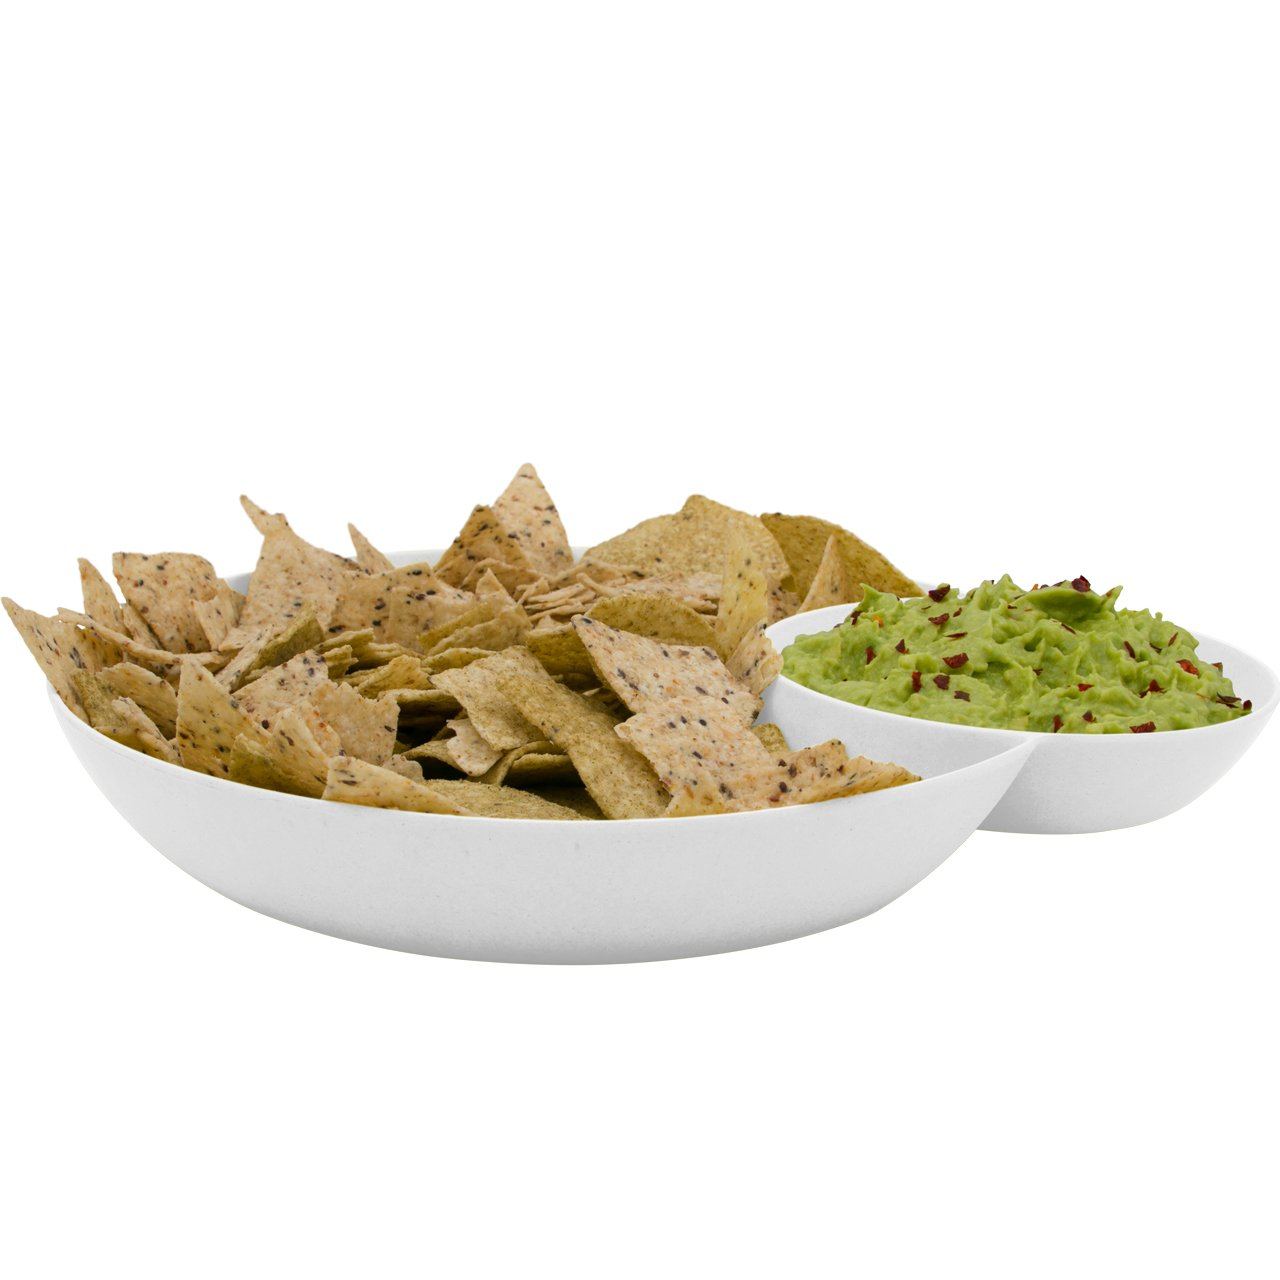 2 in 1 Snack Bowl in White Bamboo Fibre Chips and salsa serving bamboo Avoseedo Bowl for Chips and Dip